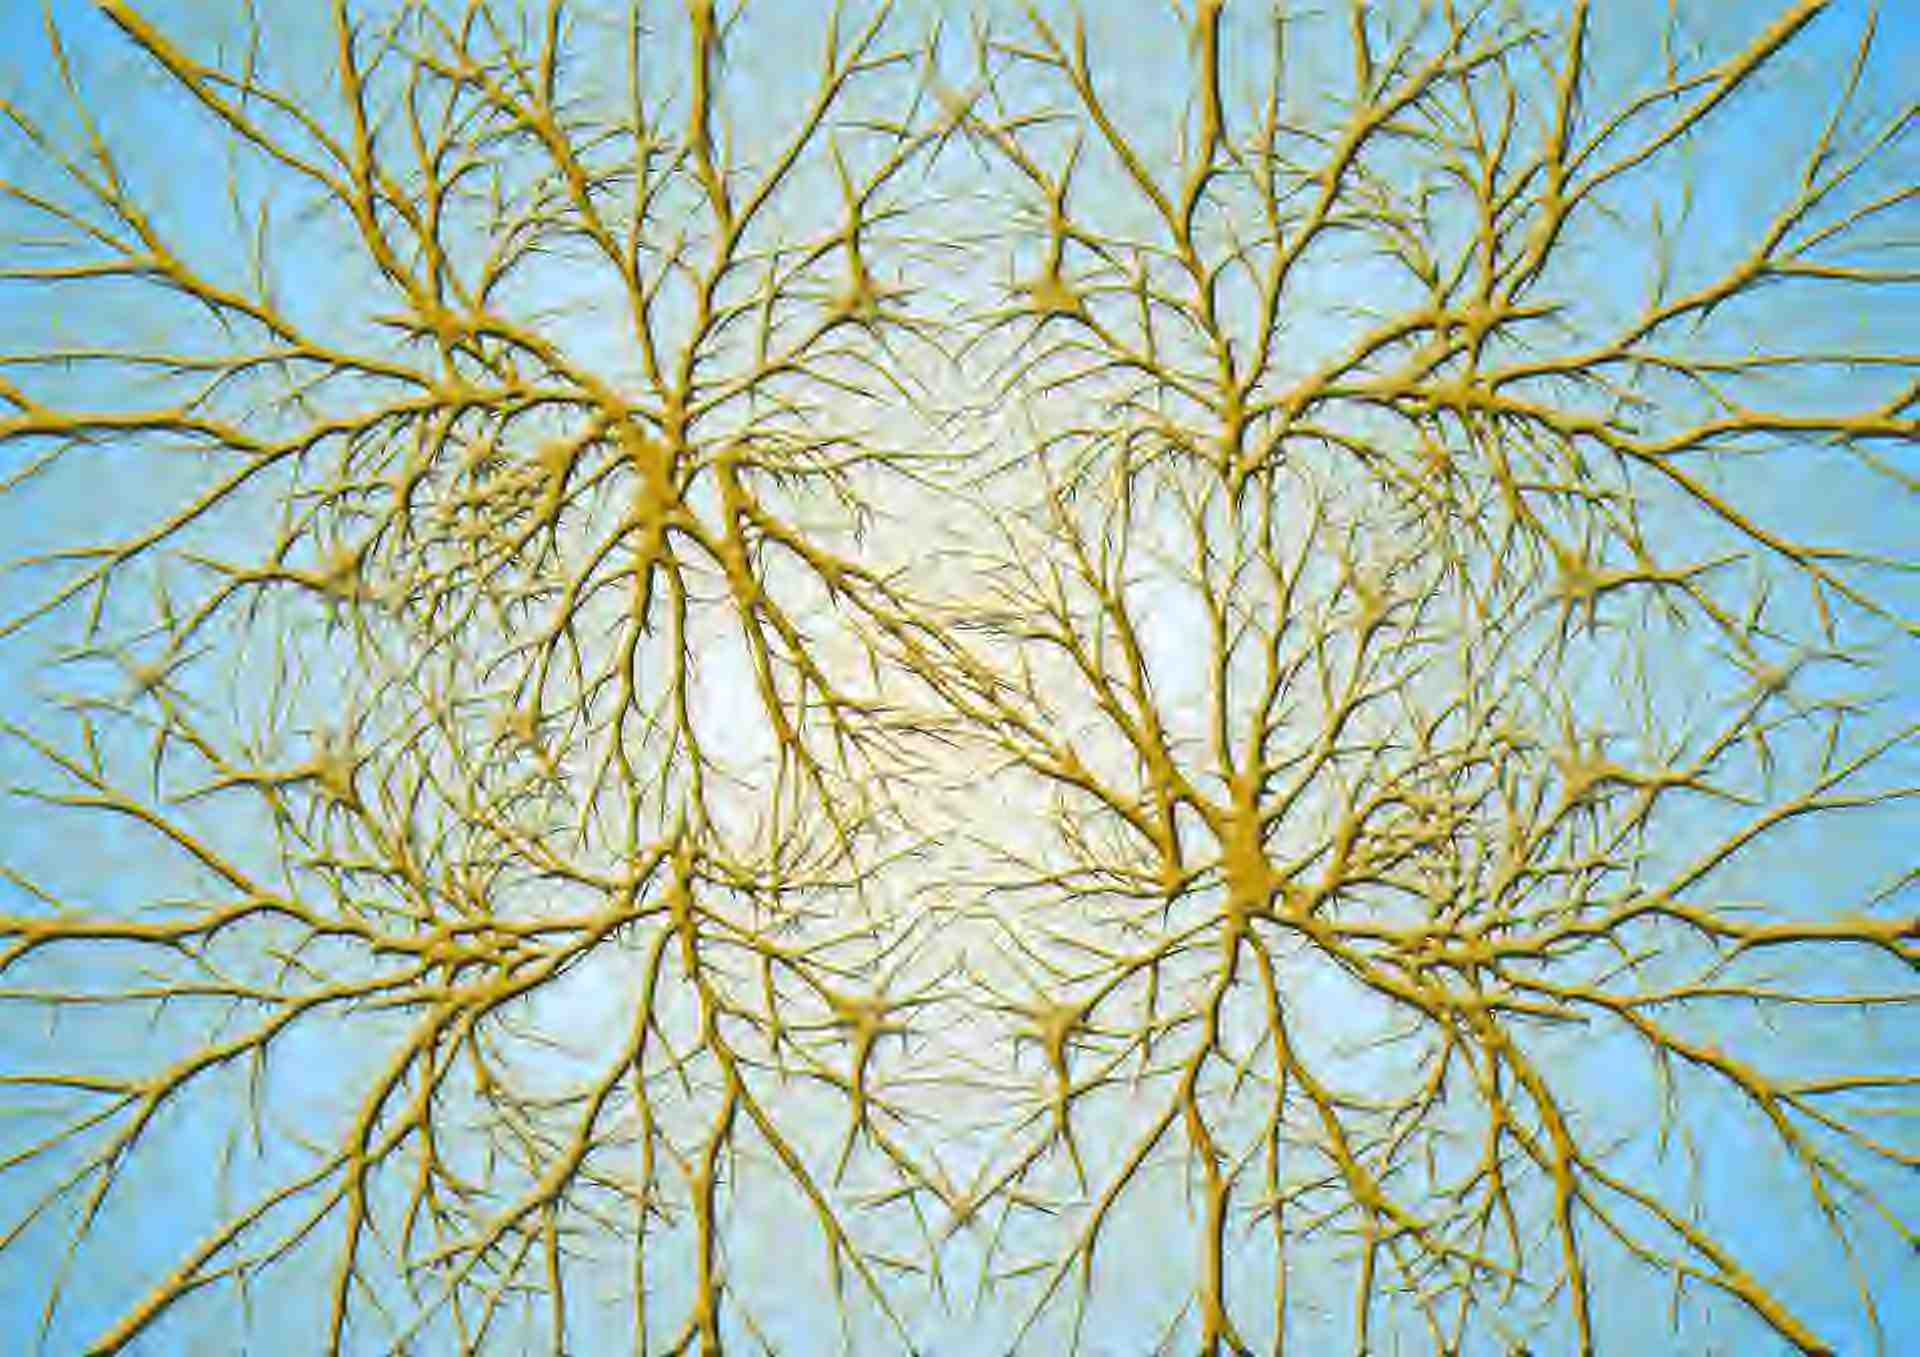 knotted neuron